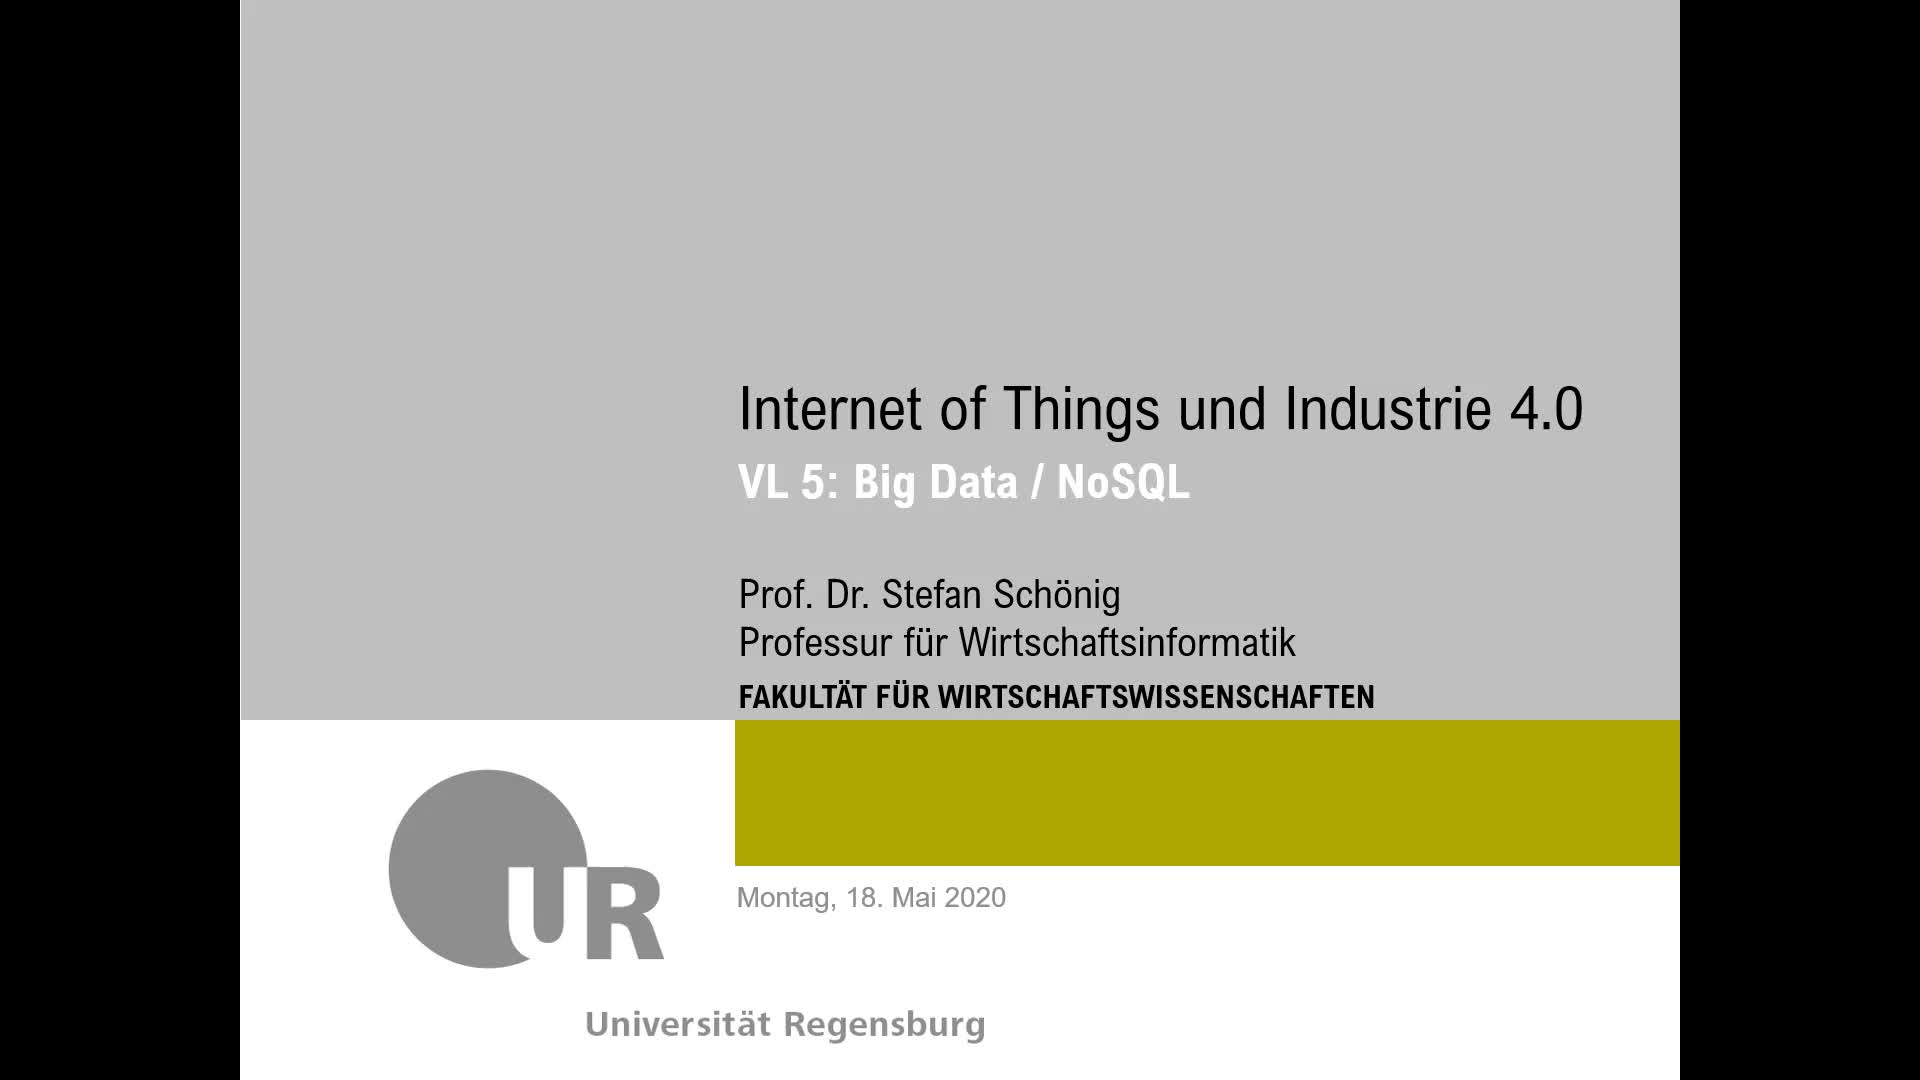 SS 2020 - Internet of Things und Industrie 4.0 - Kapitel 5 (BigData/NoSQL - Konzepte)